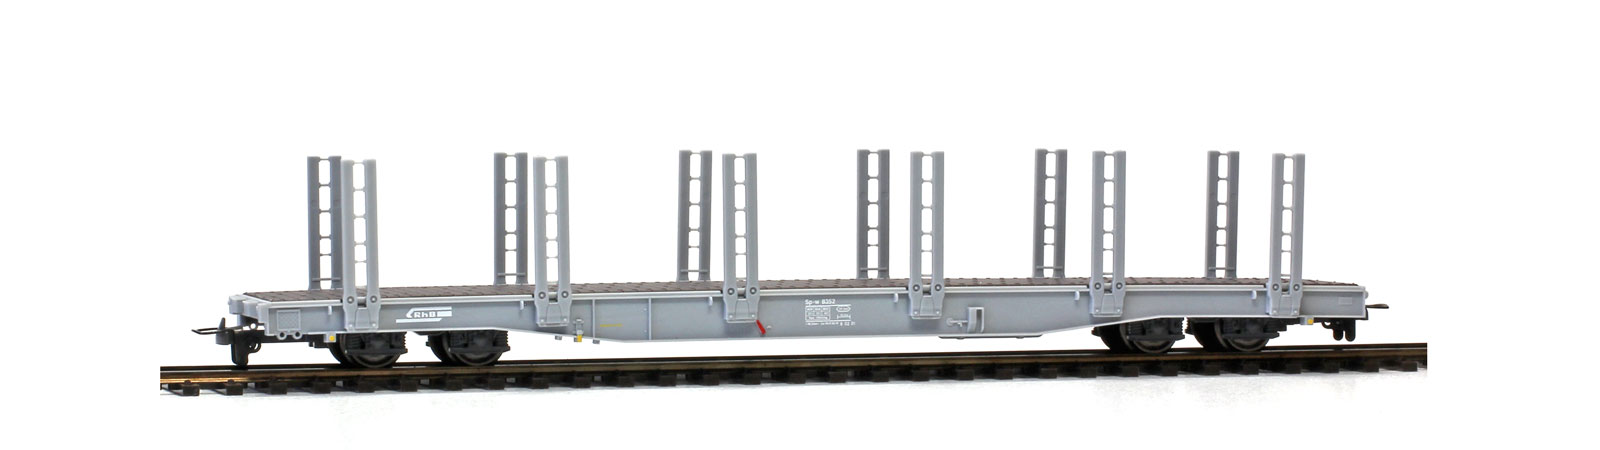 Bemo 2281 112 RhB Sp-w 8357 stake car with double stake unloaded